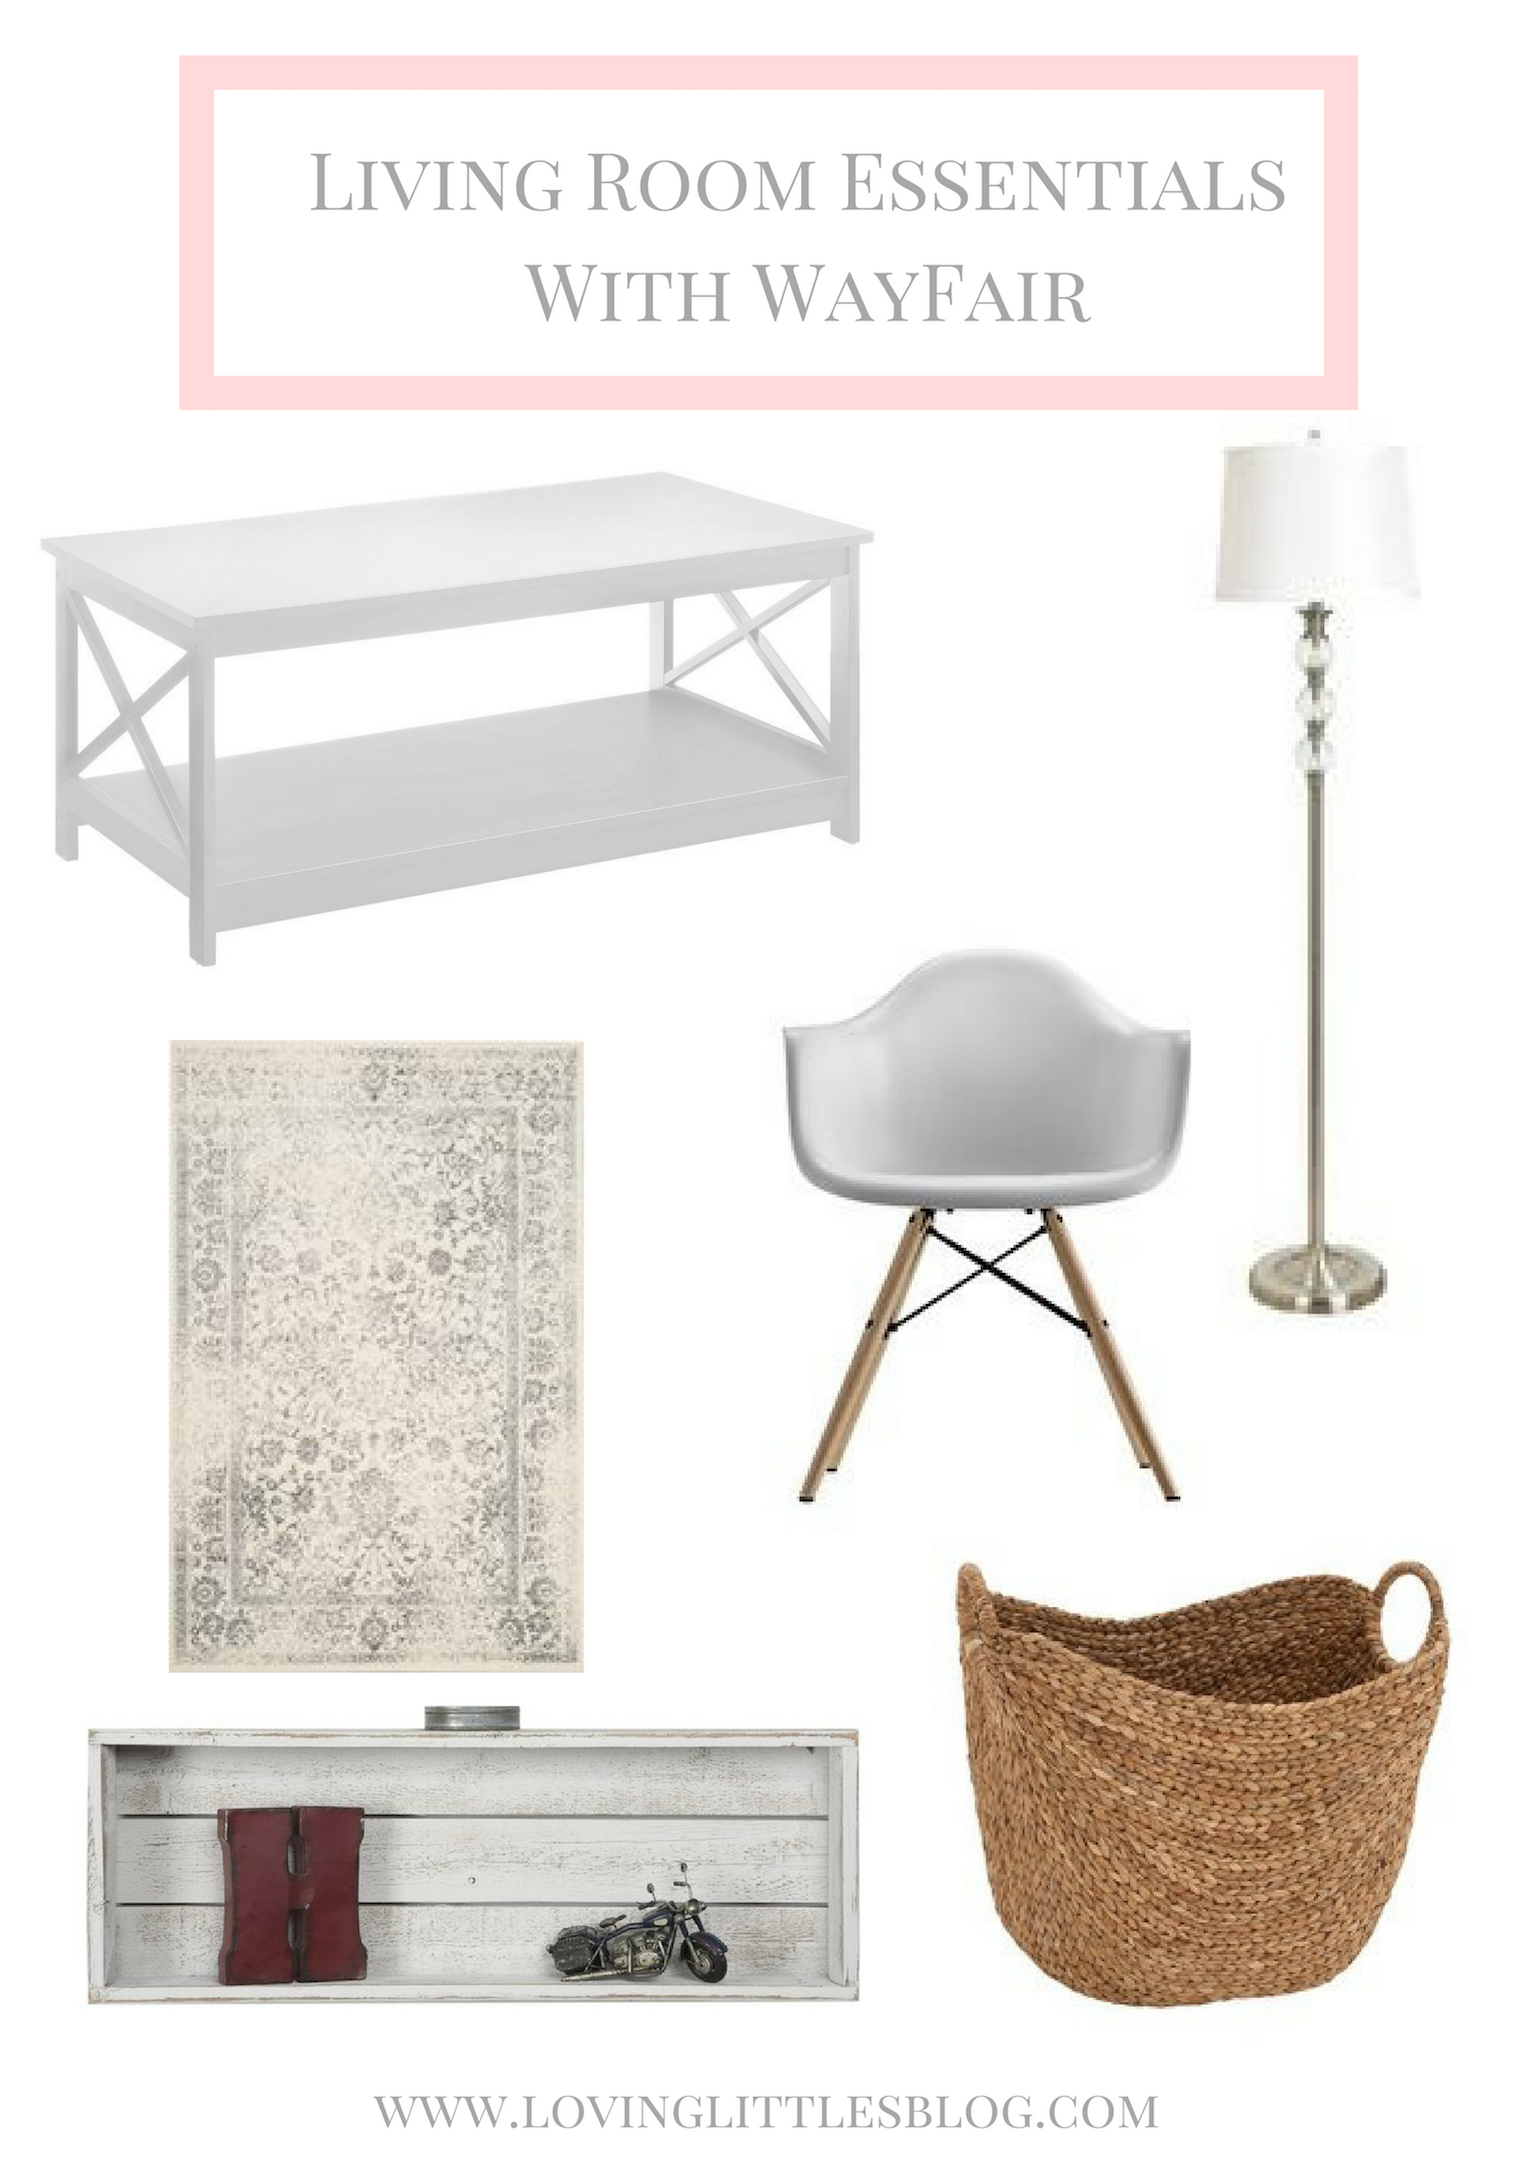 Way Fair Wayfair Living Room Essentials Loving Littles